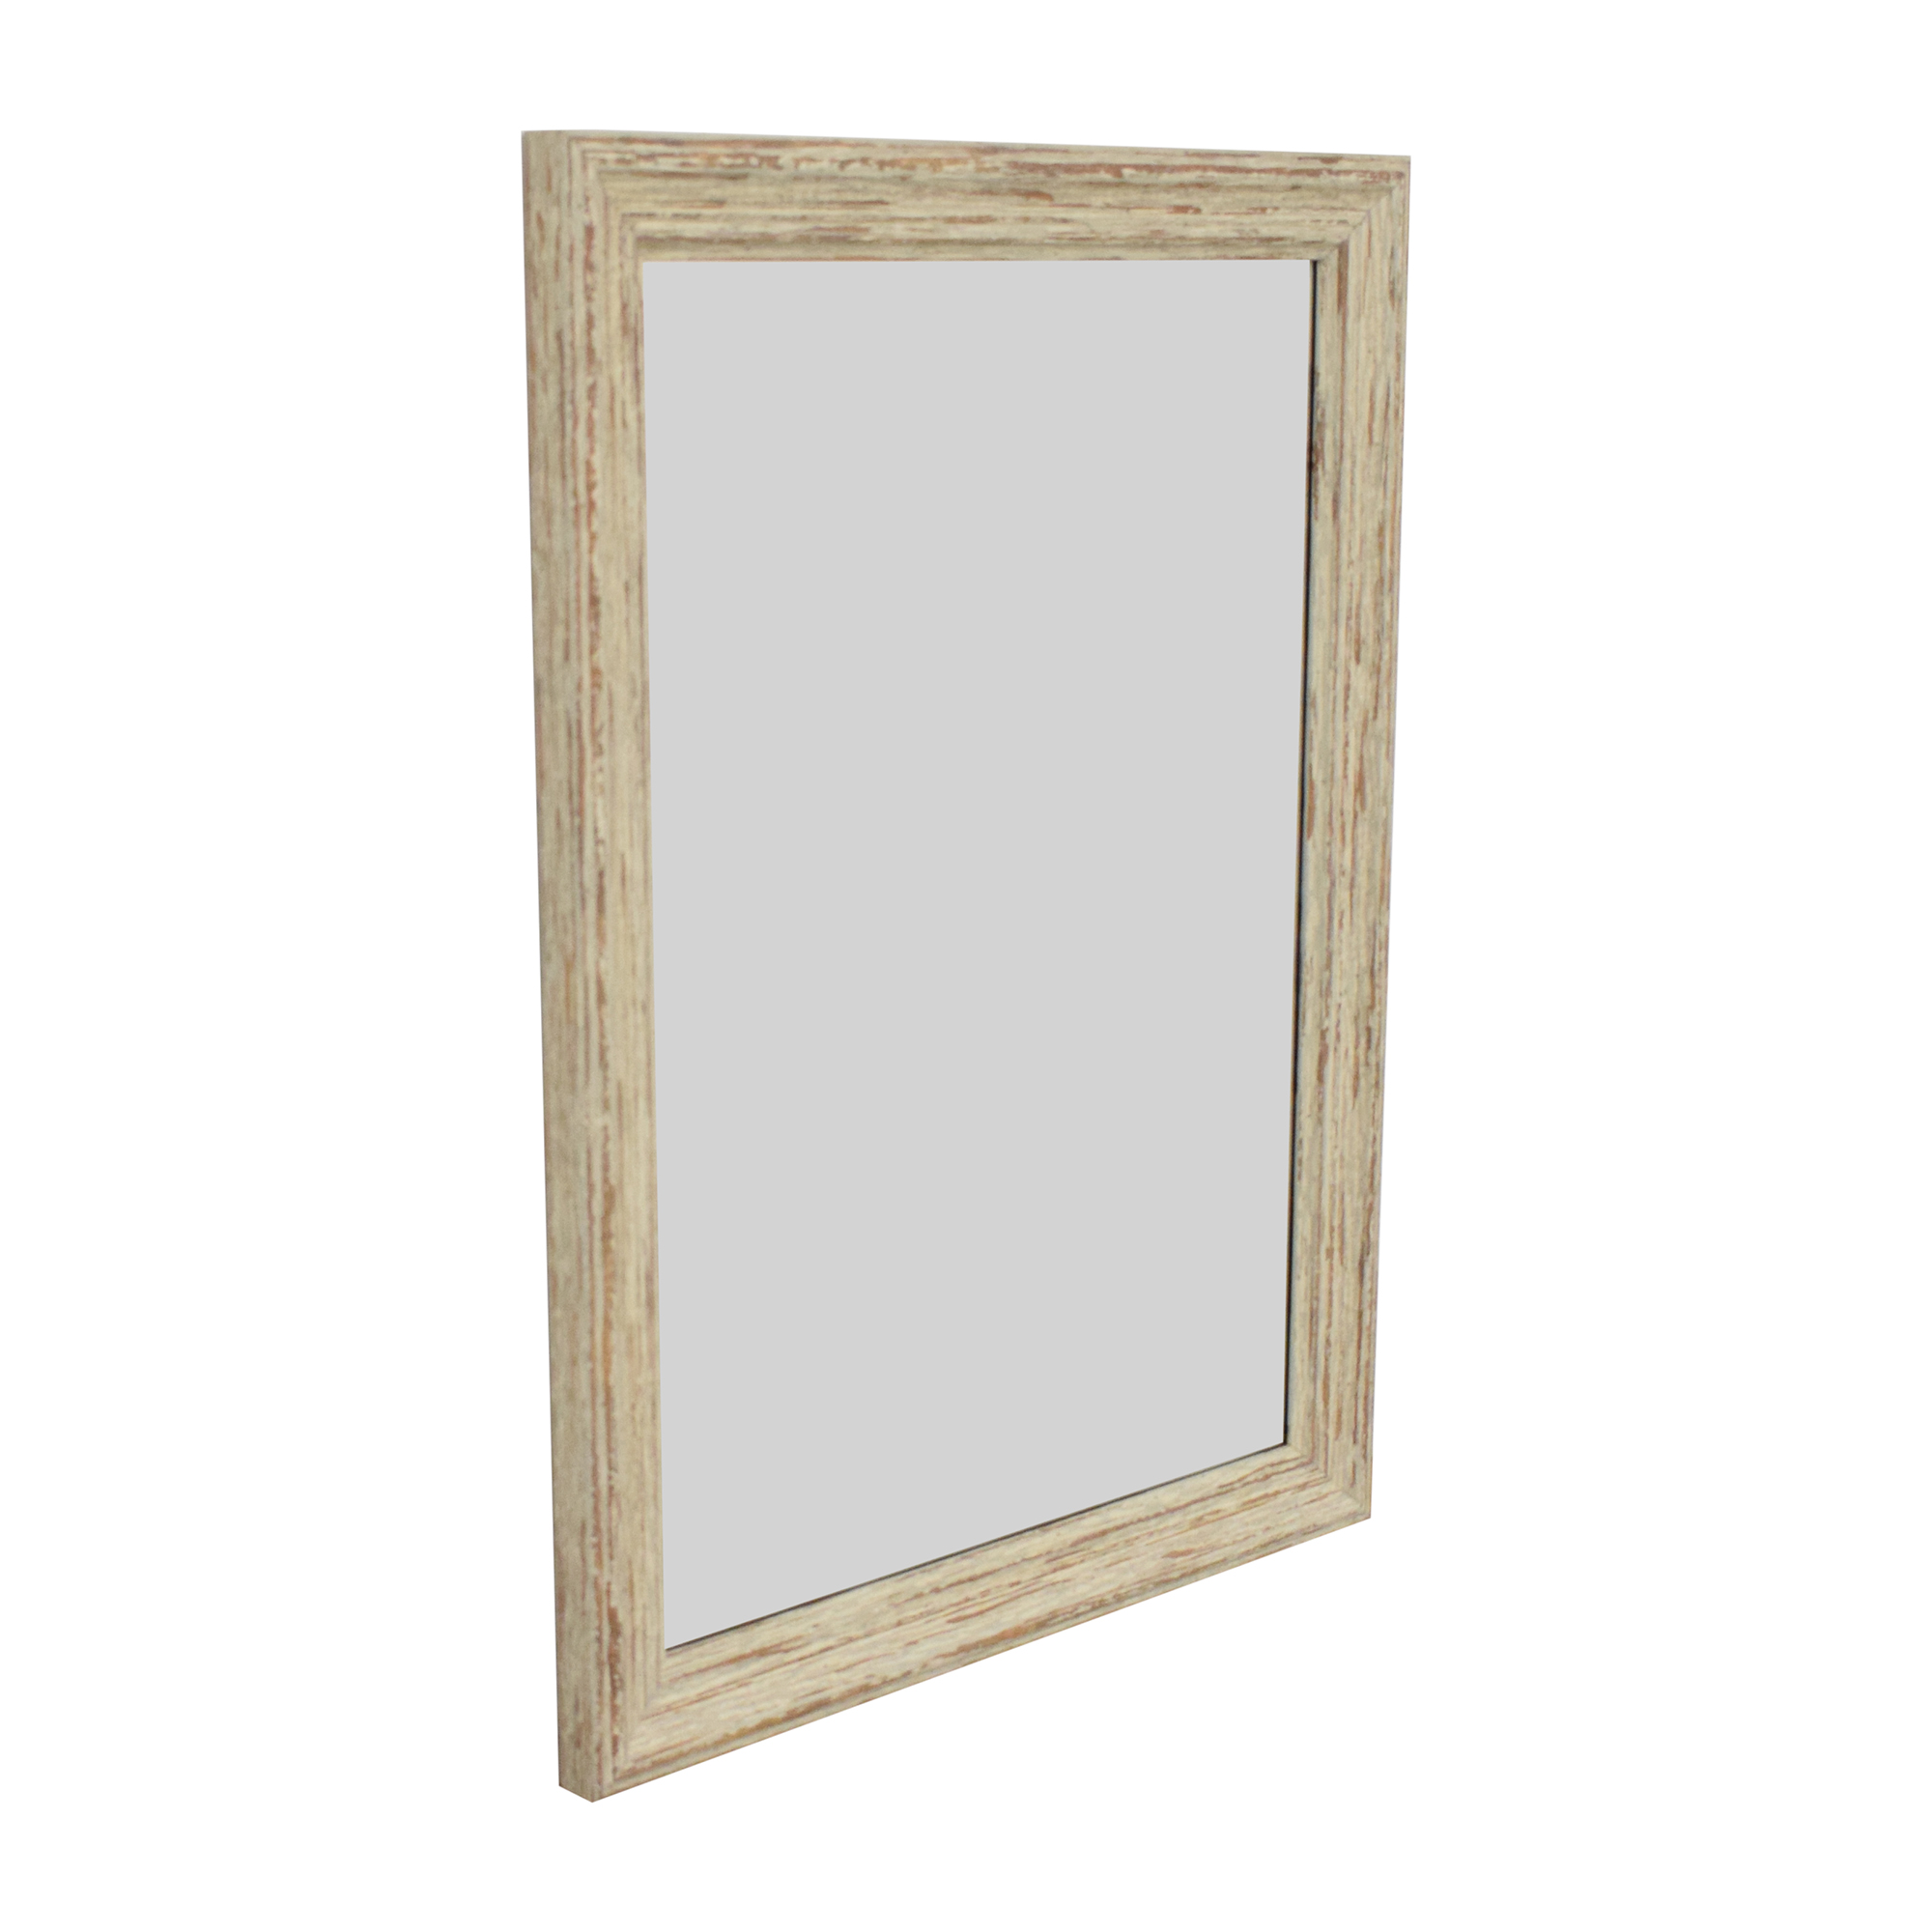 Shabby Chic Style Wall Mirror coupon